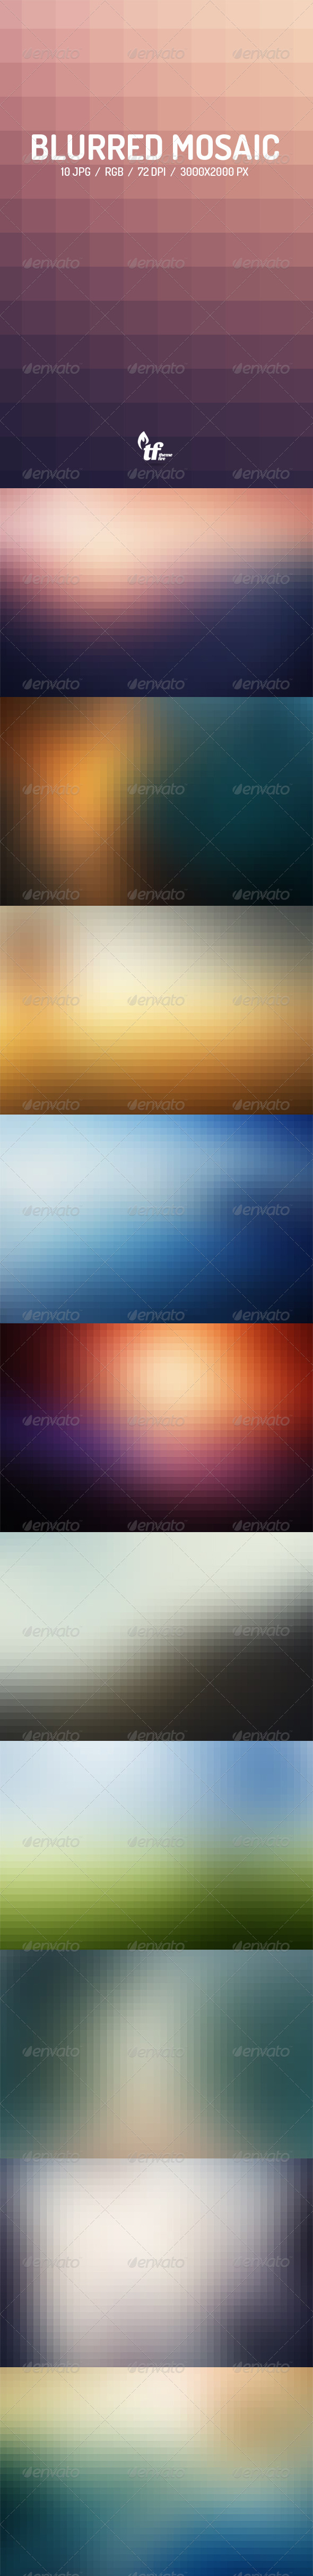 GraphicRiver Blur Mosaic Backgrounds 7864563